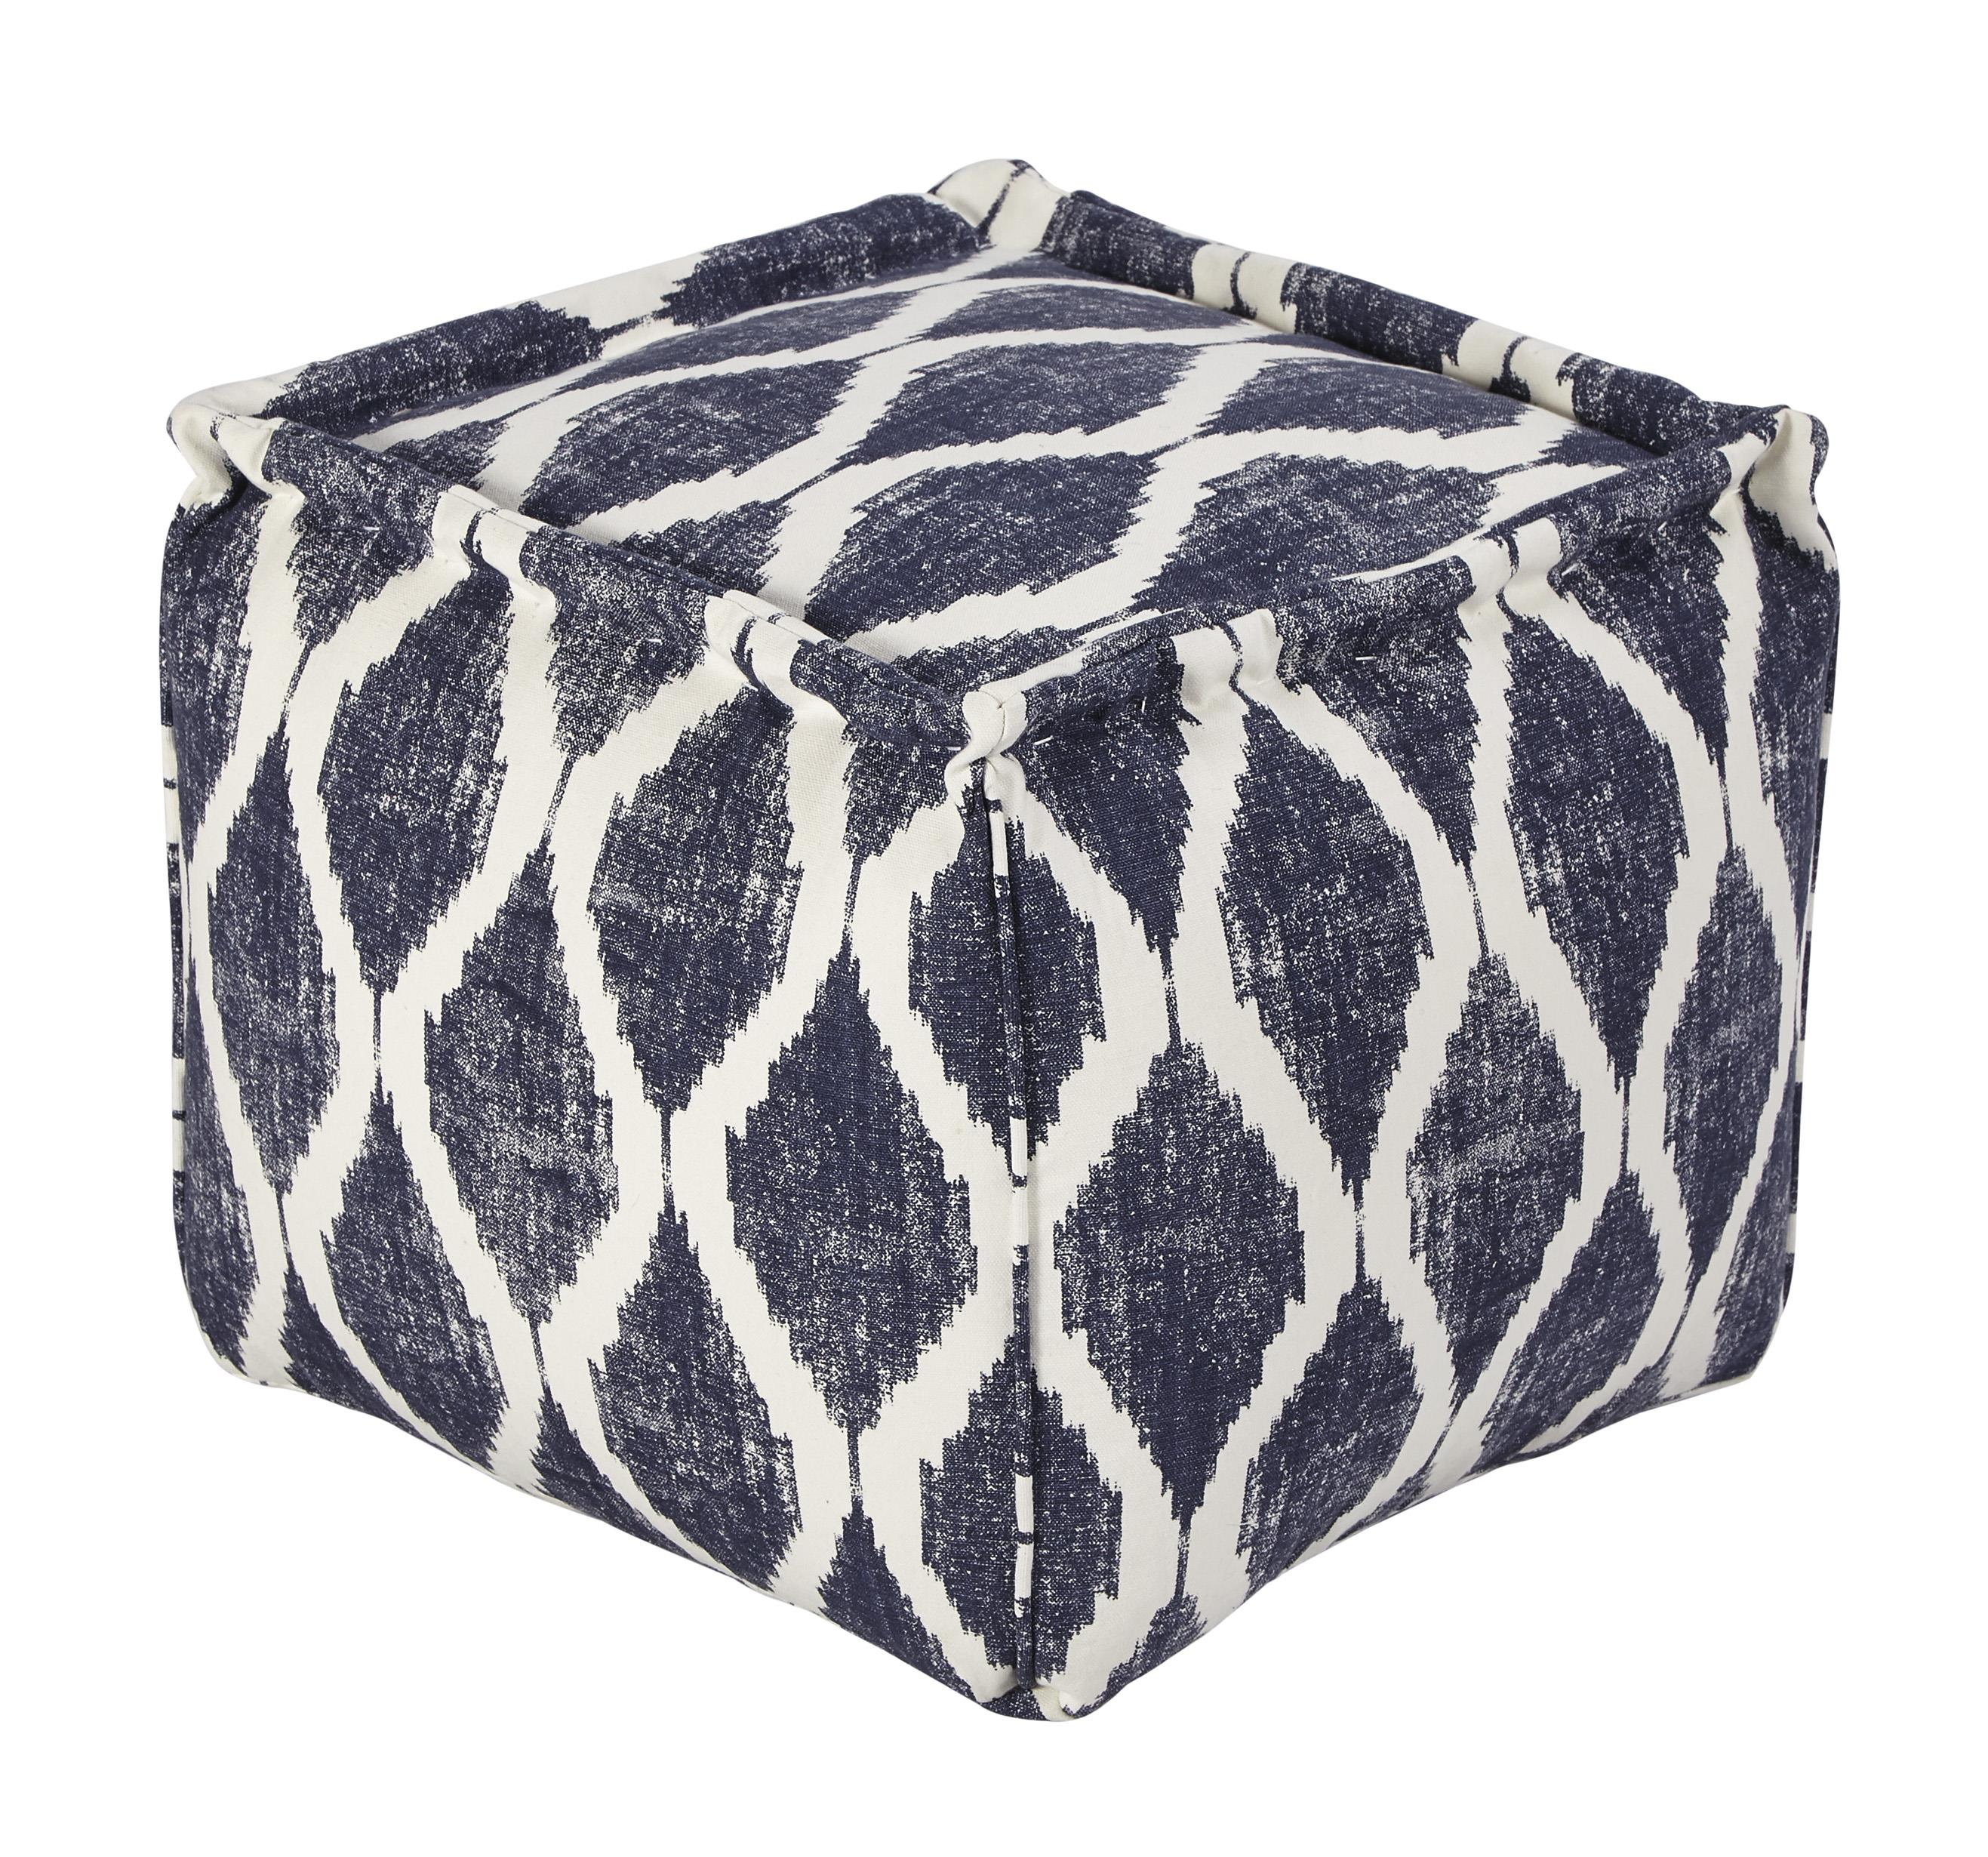 Signature Design by Ashley Poufs Bruce - Ink/White Pouf - Item Number: A1000548